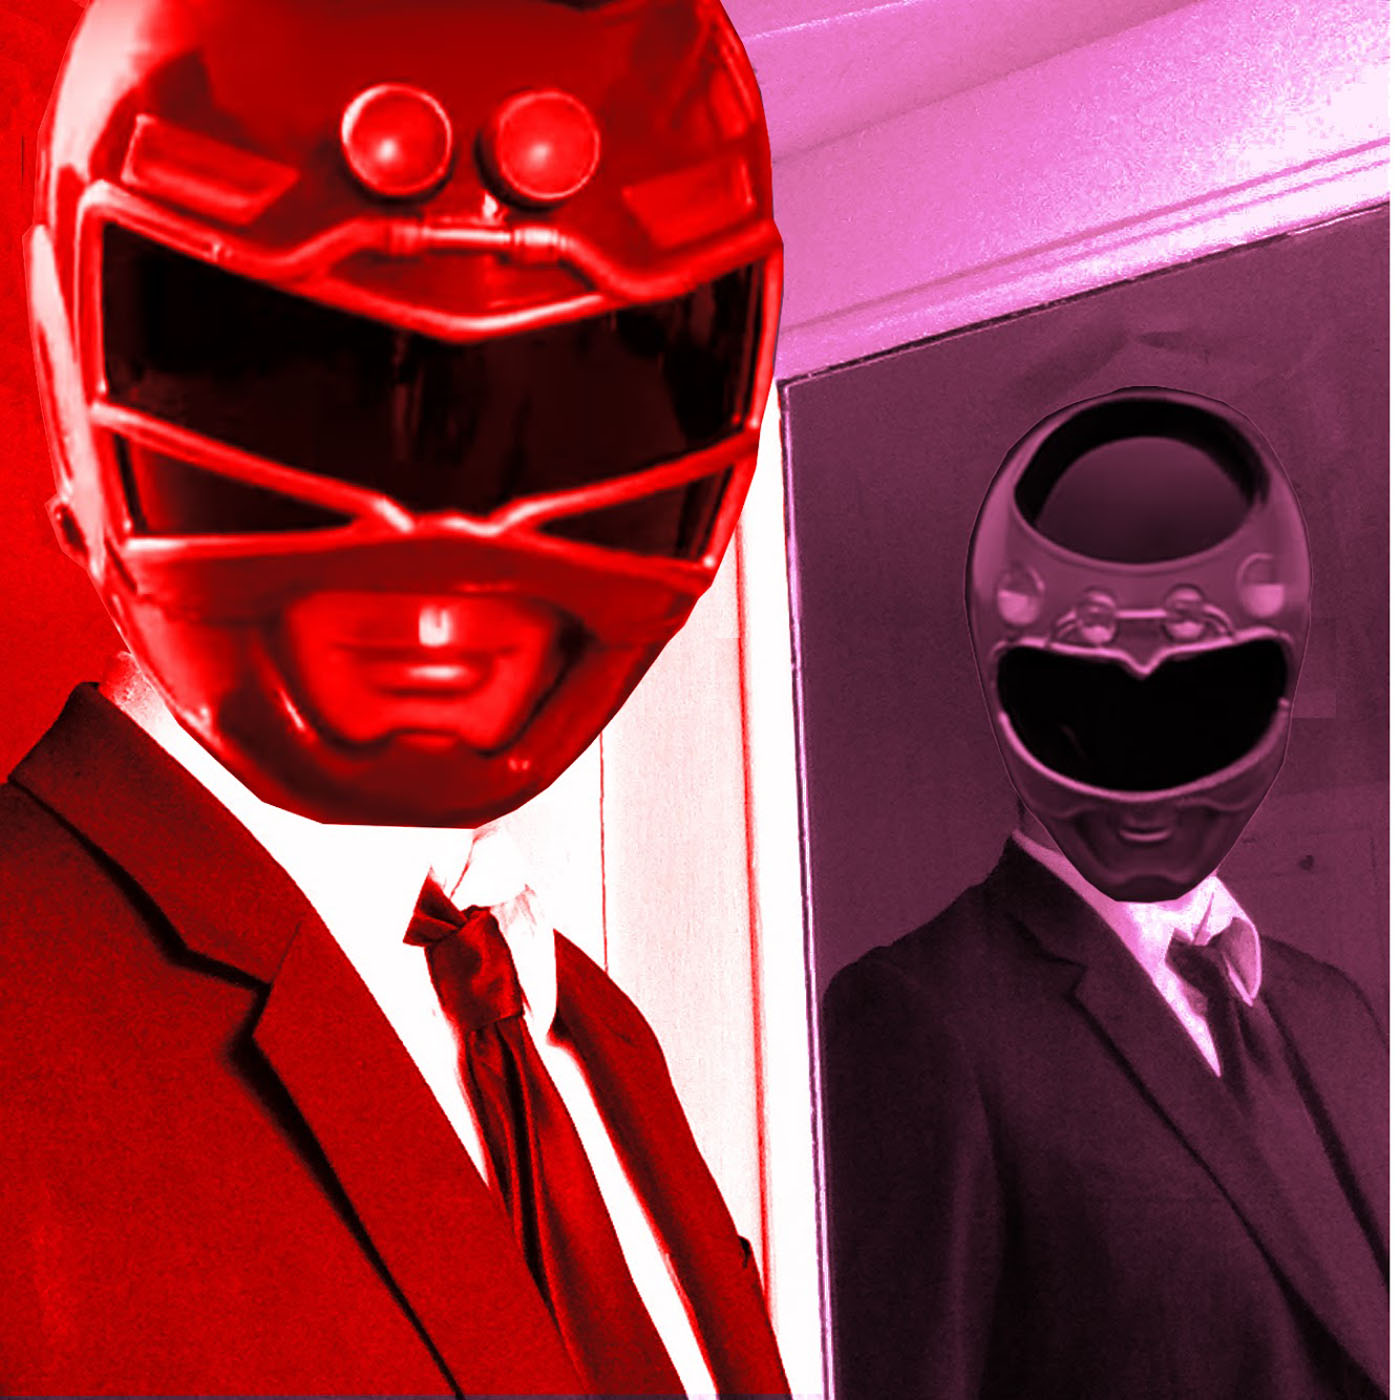 Super Sentai Brothers - The Spy Who Loved Megaranger show art